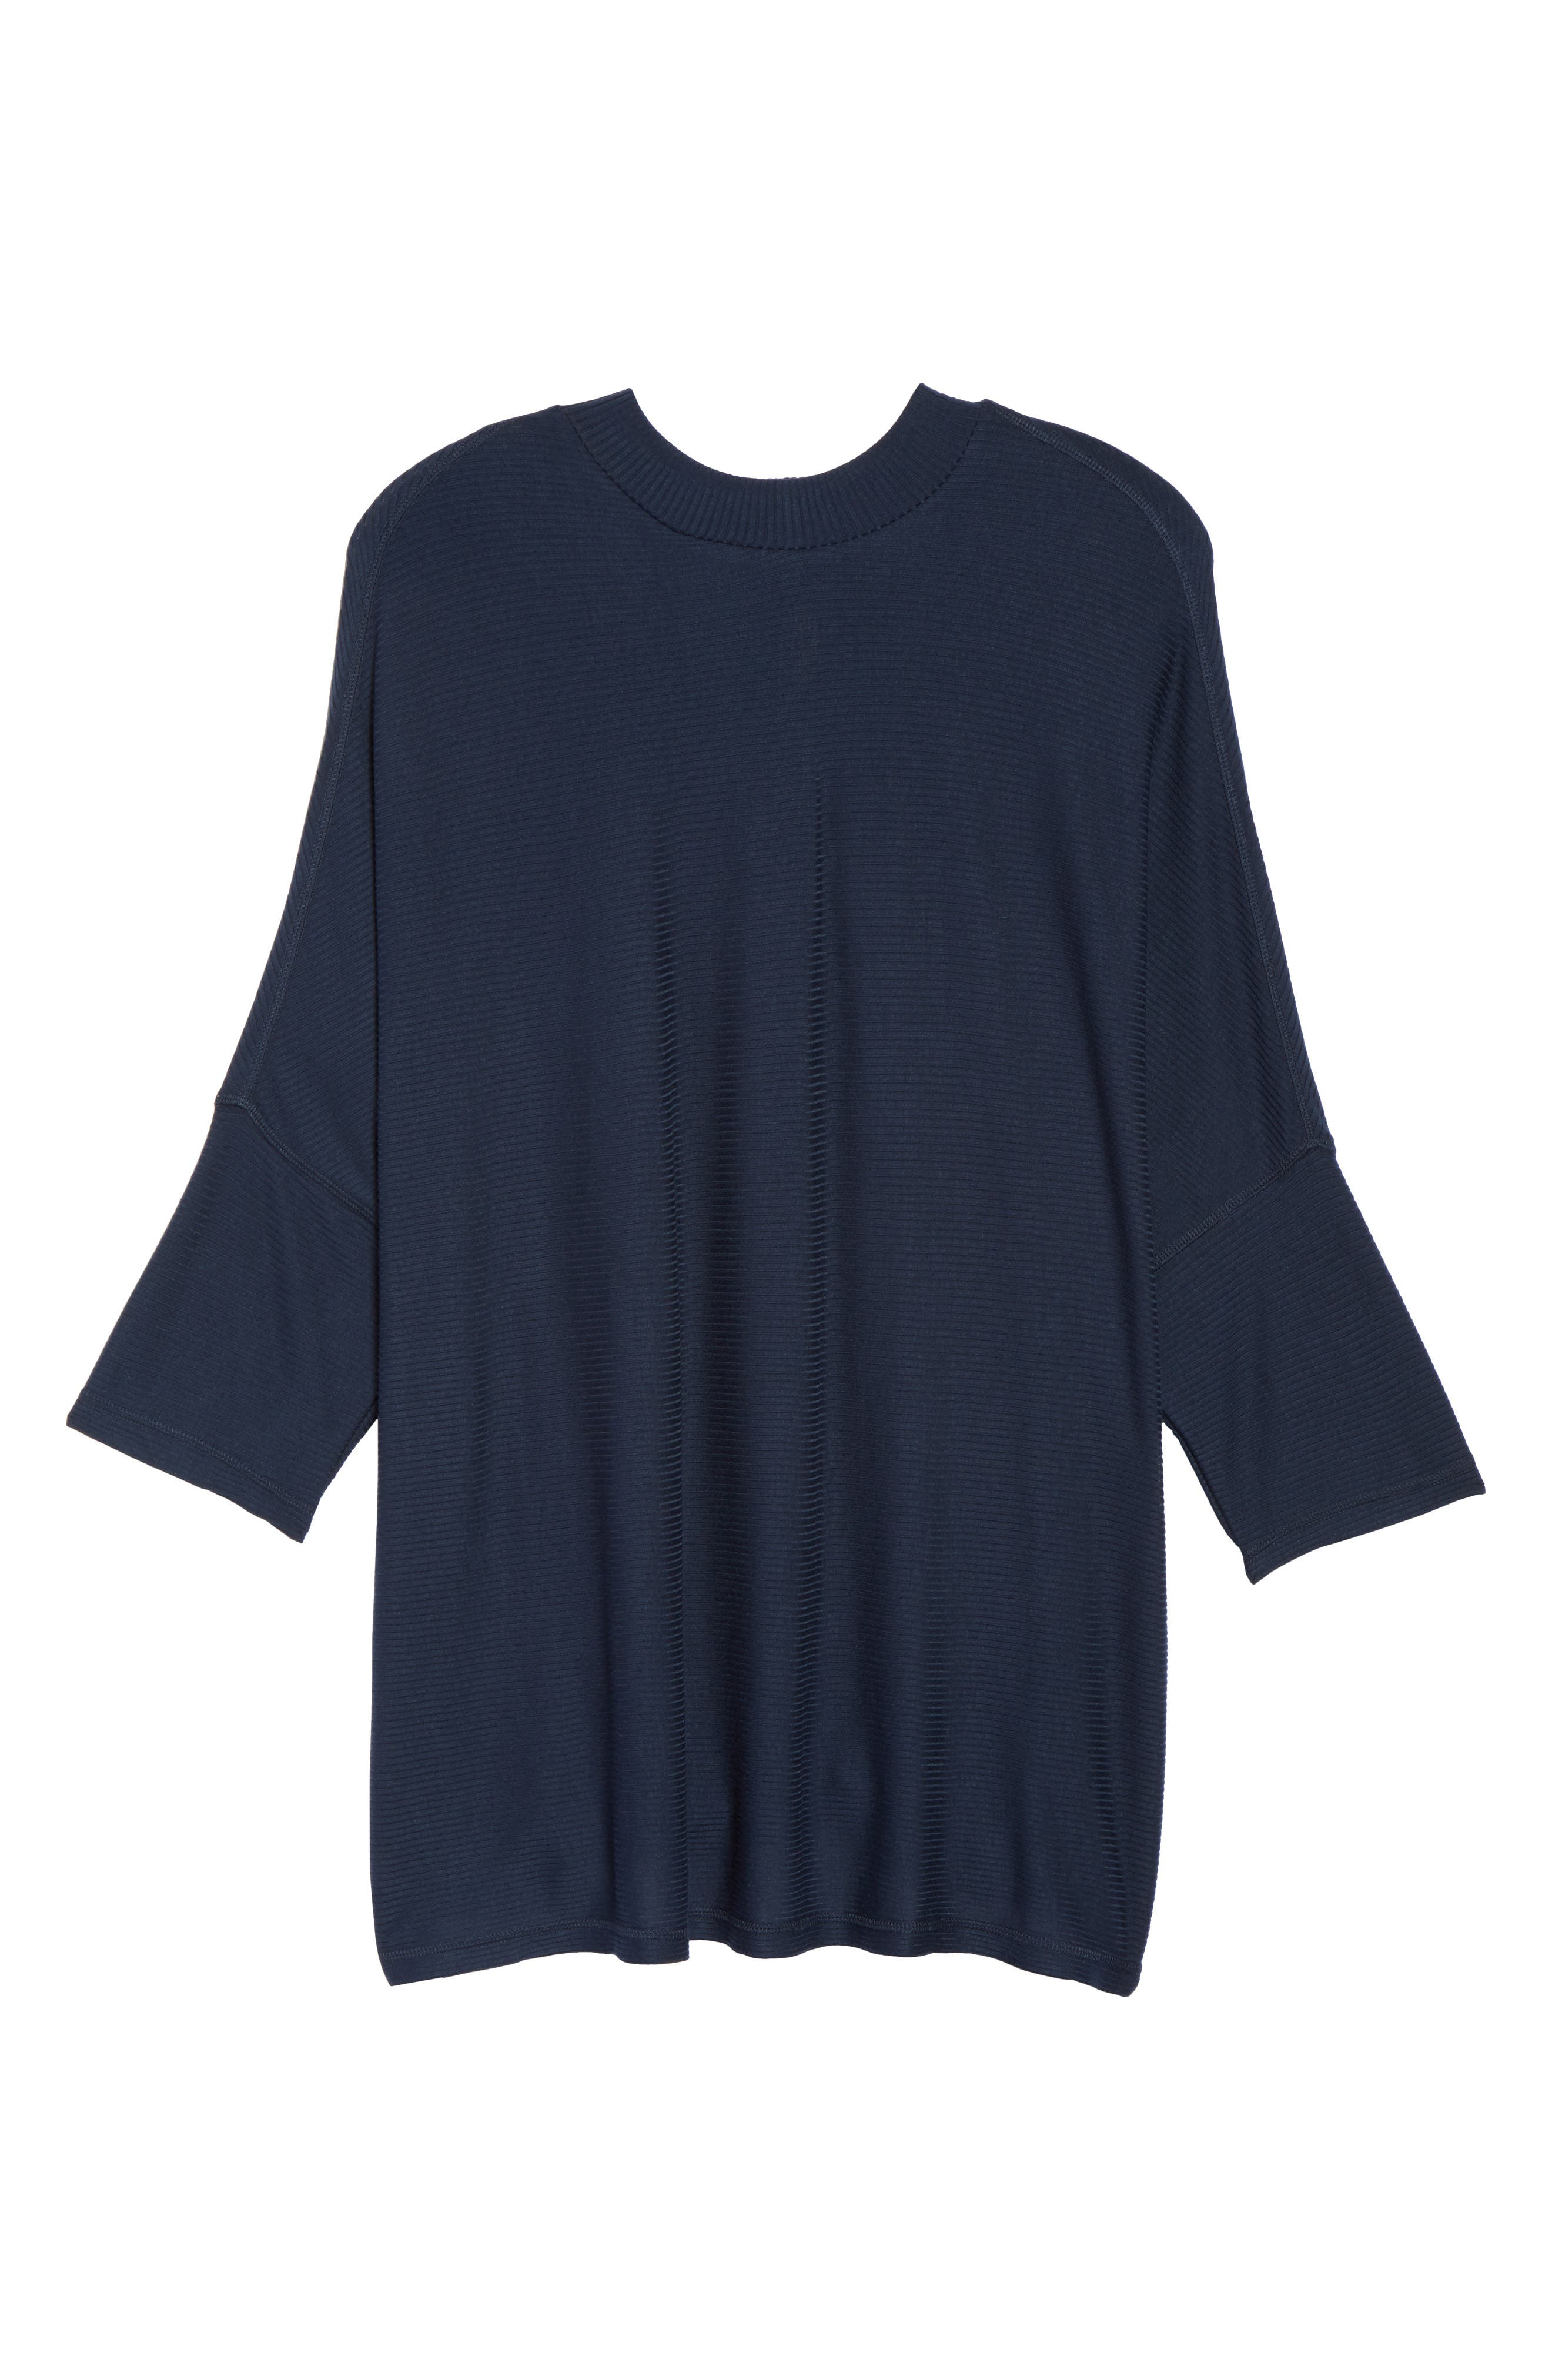 Alternate Image 6  - Melissa McCarthy Seven7 Mock Neck Rib Knit Top (Plus Size)